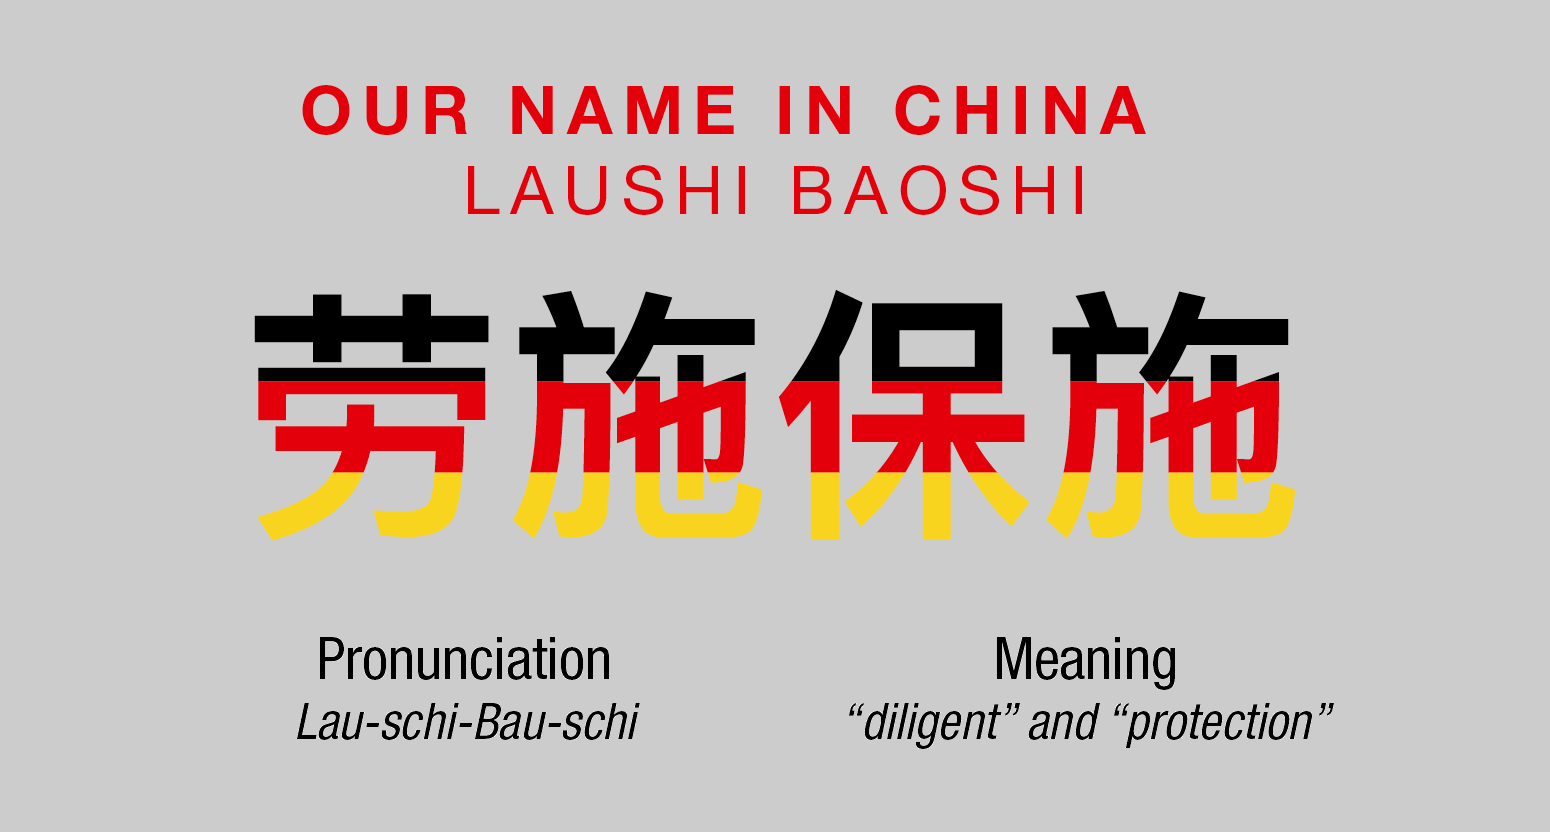 Our name in China